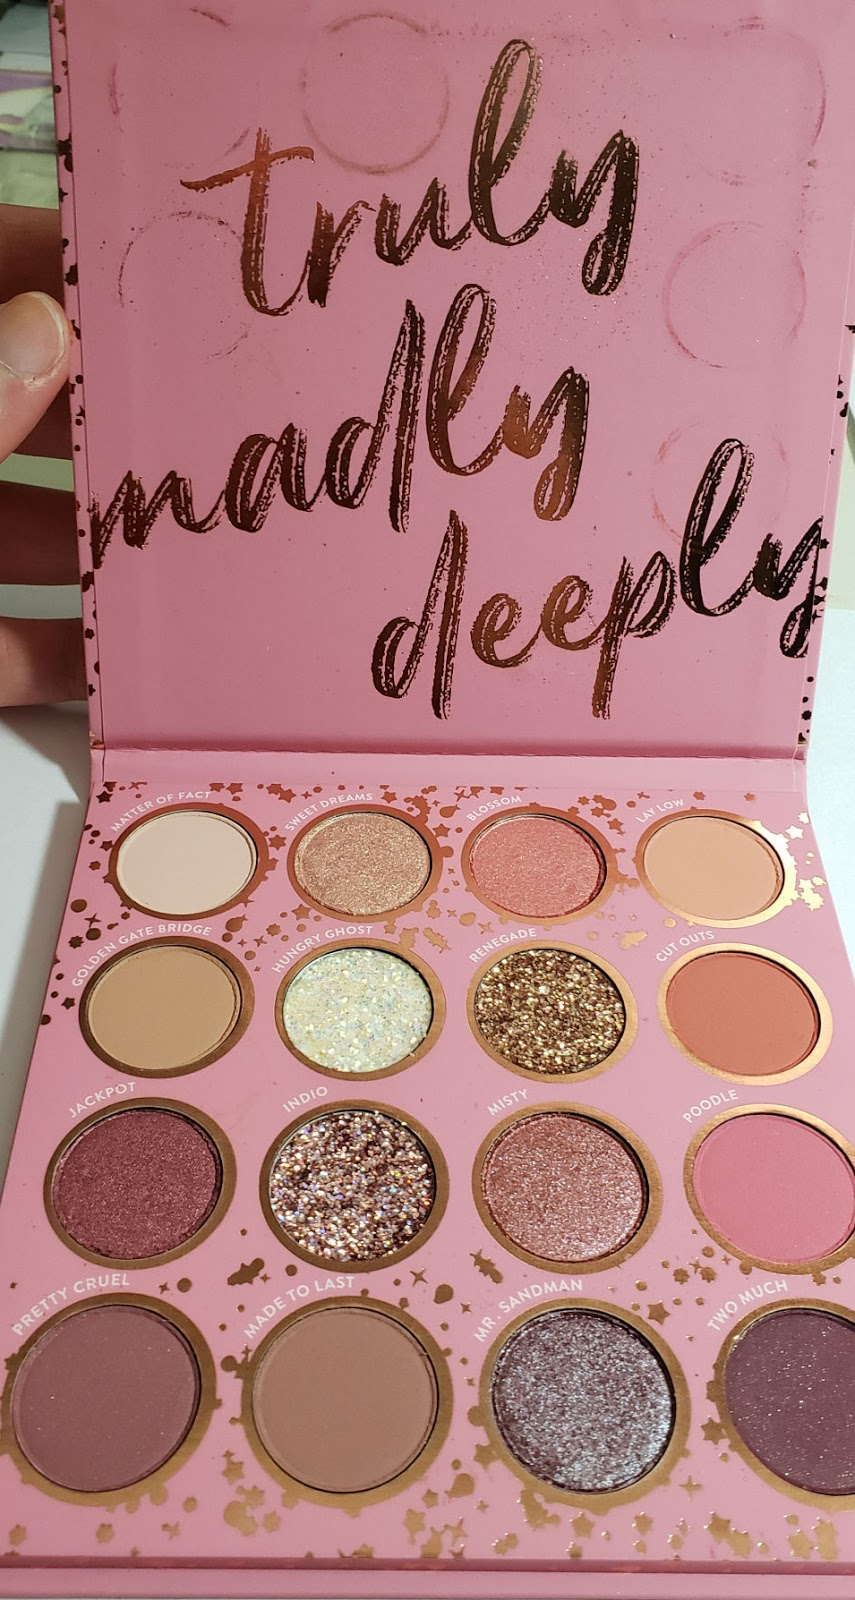 Truly Madly Deeply Eyeshadow Palette by Colourpop #19